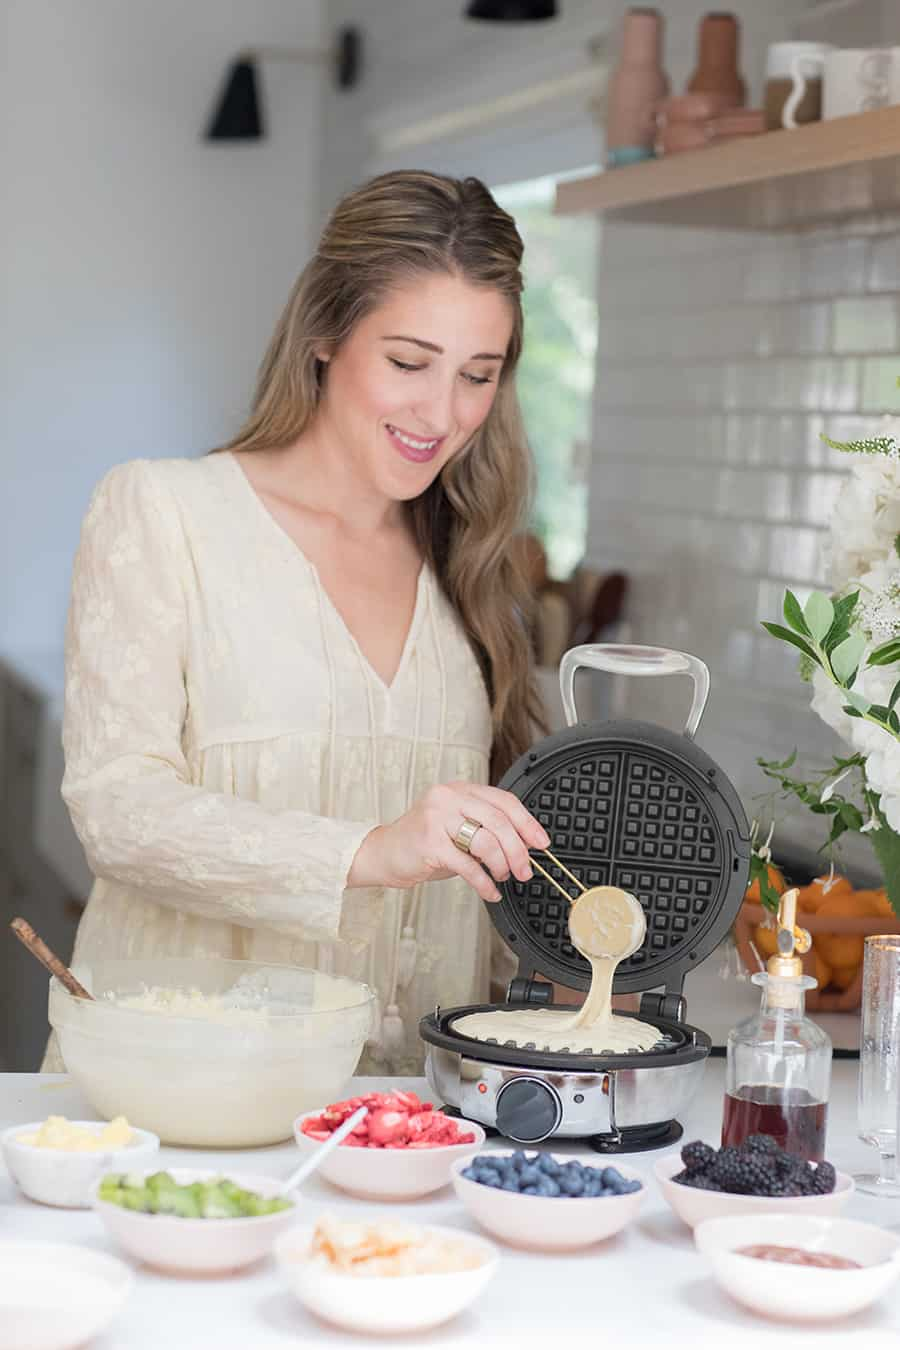 Eden Passante pouring batter into a round waffle maker.